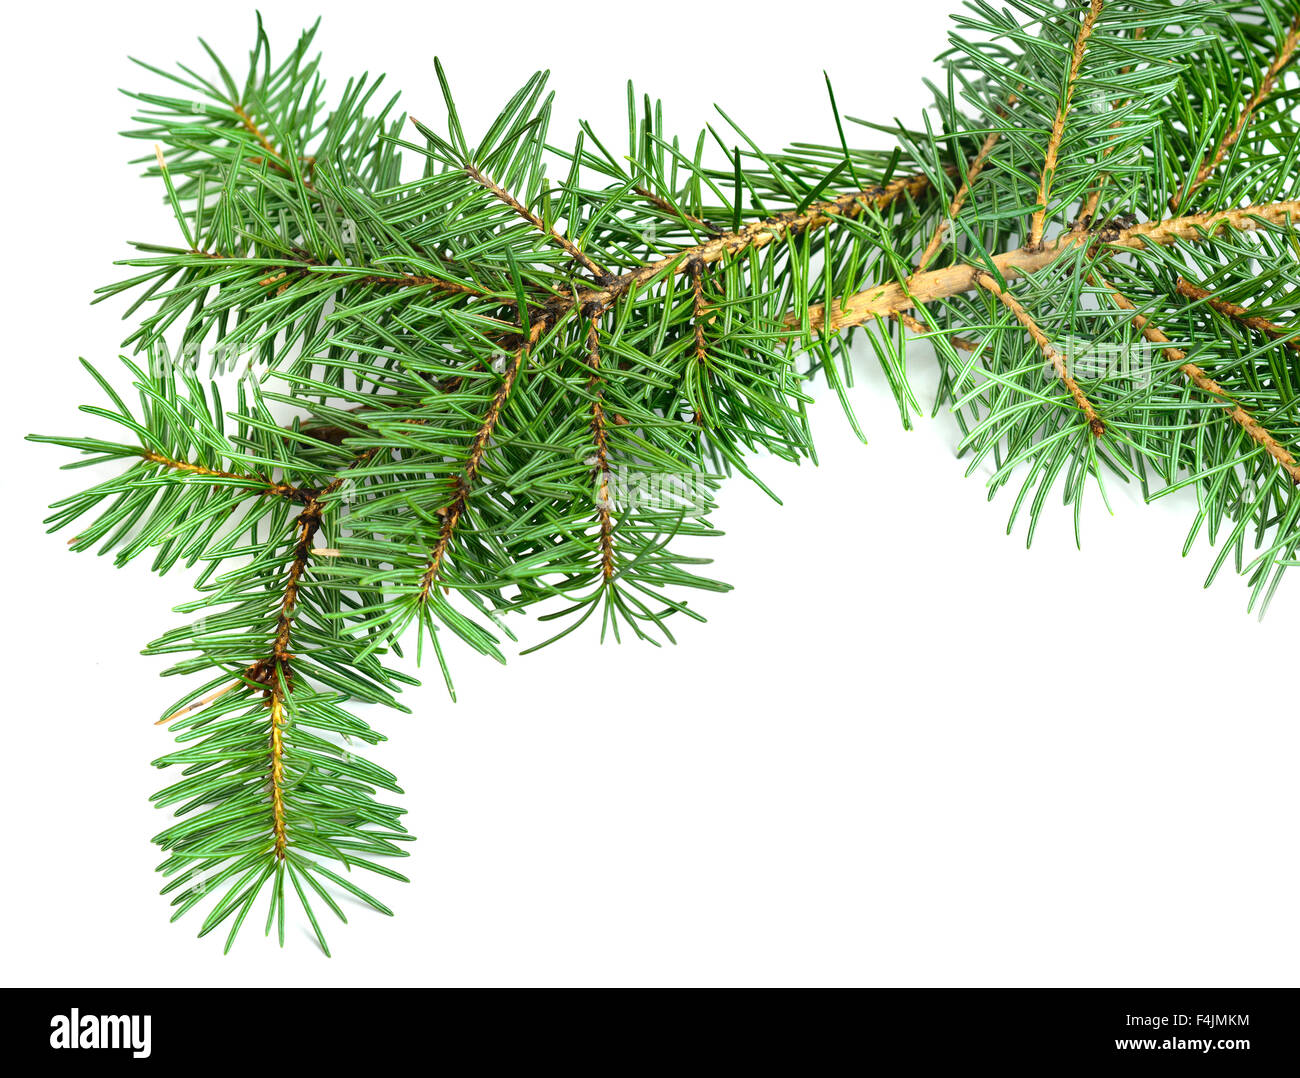 Christmas tree branch isolated on white - Stock Image